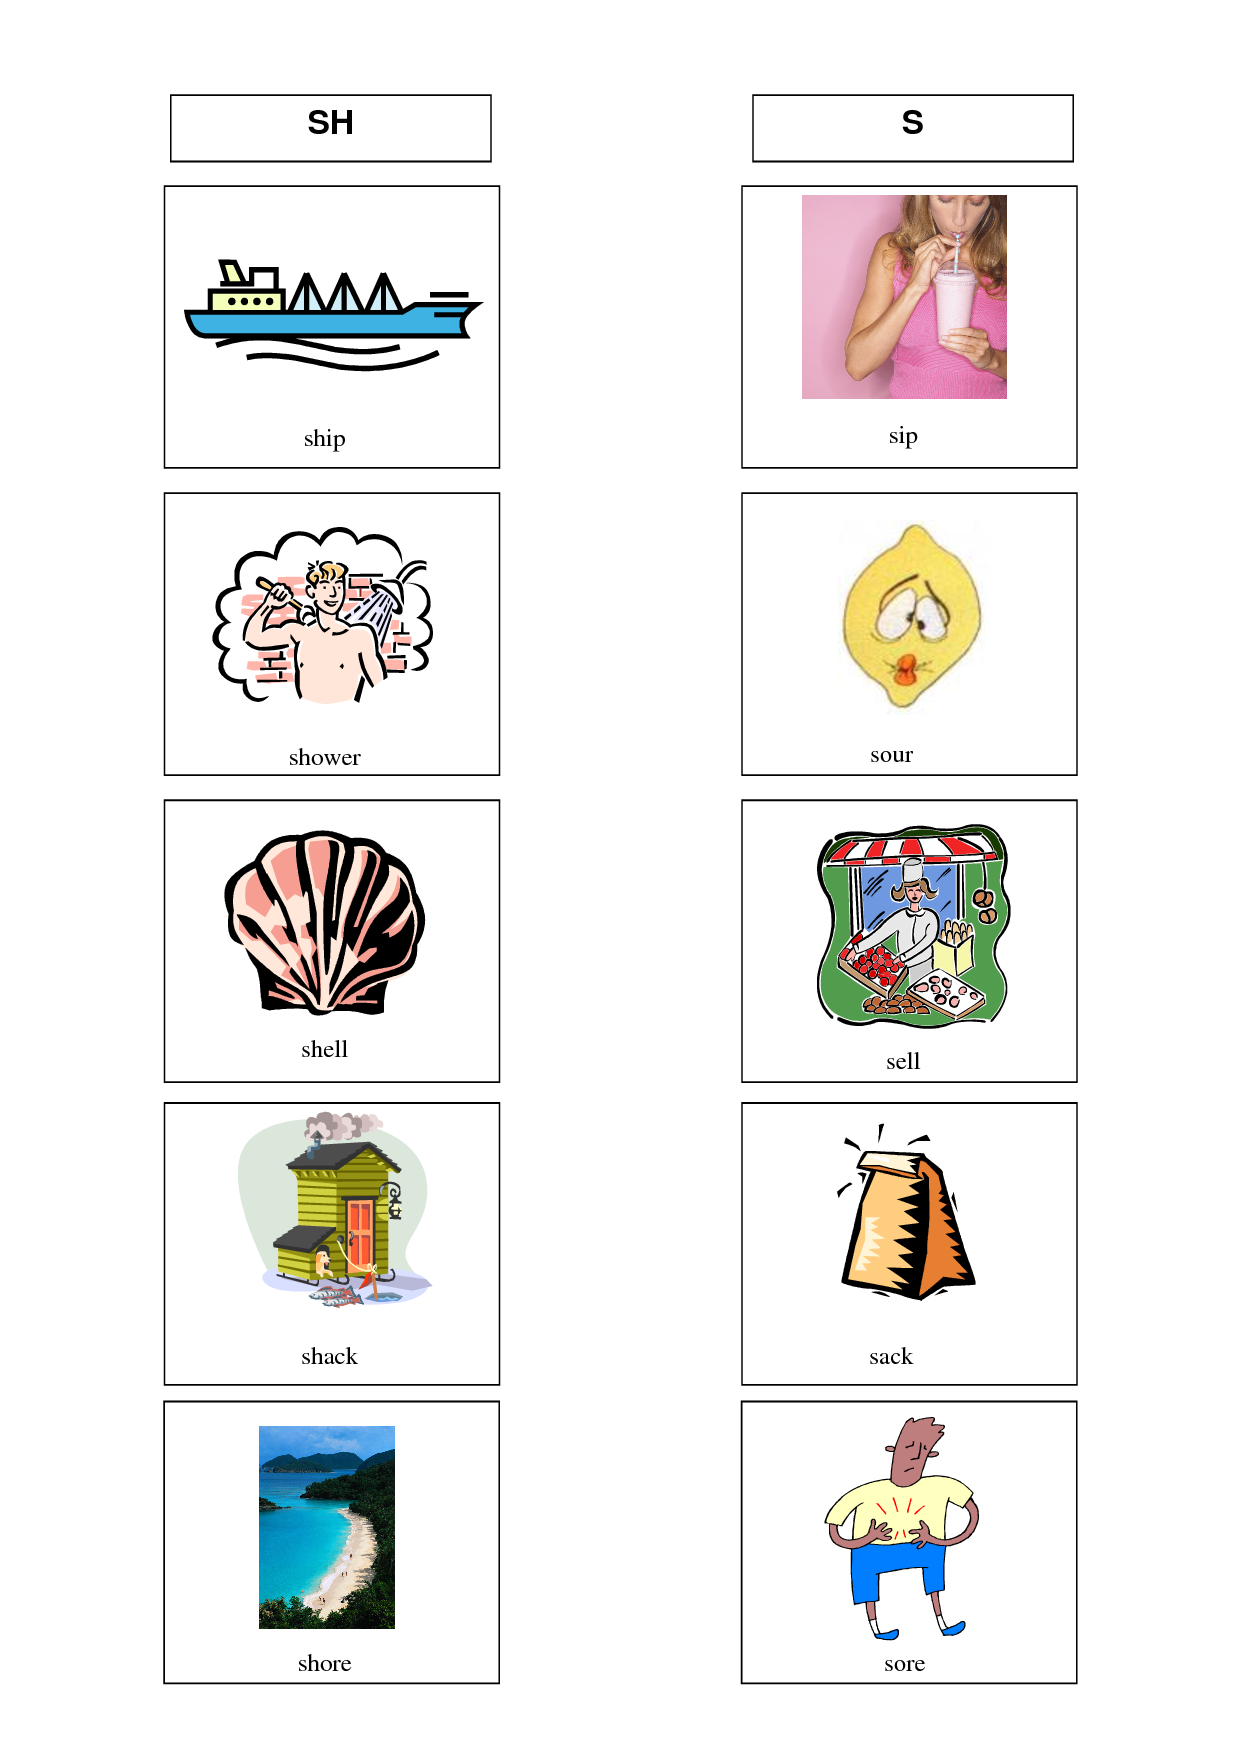 Image Result For S Sh Minimal Pairs